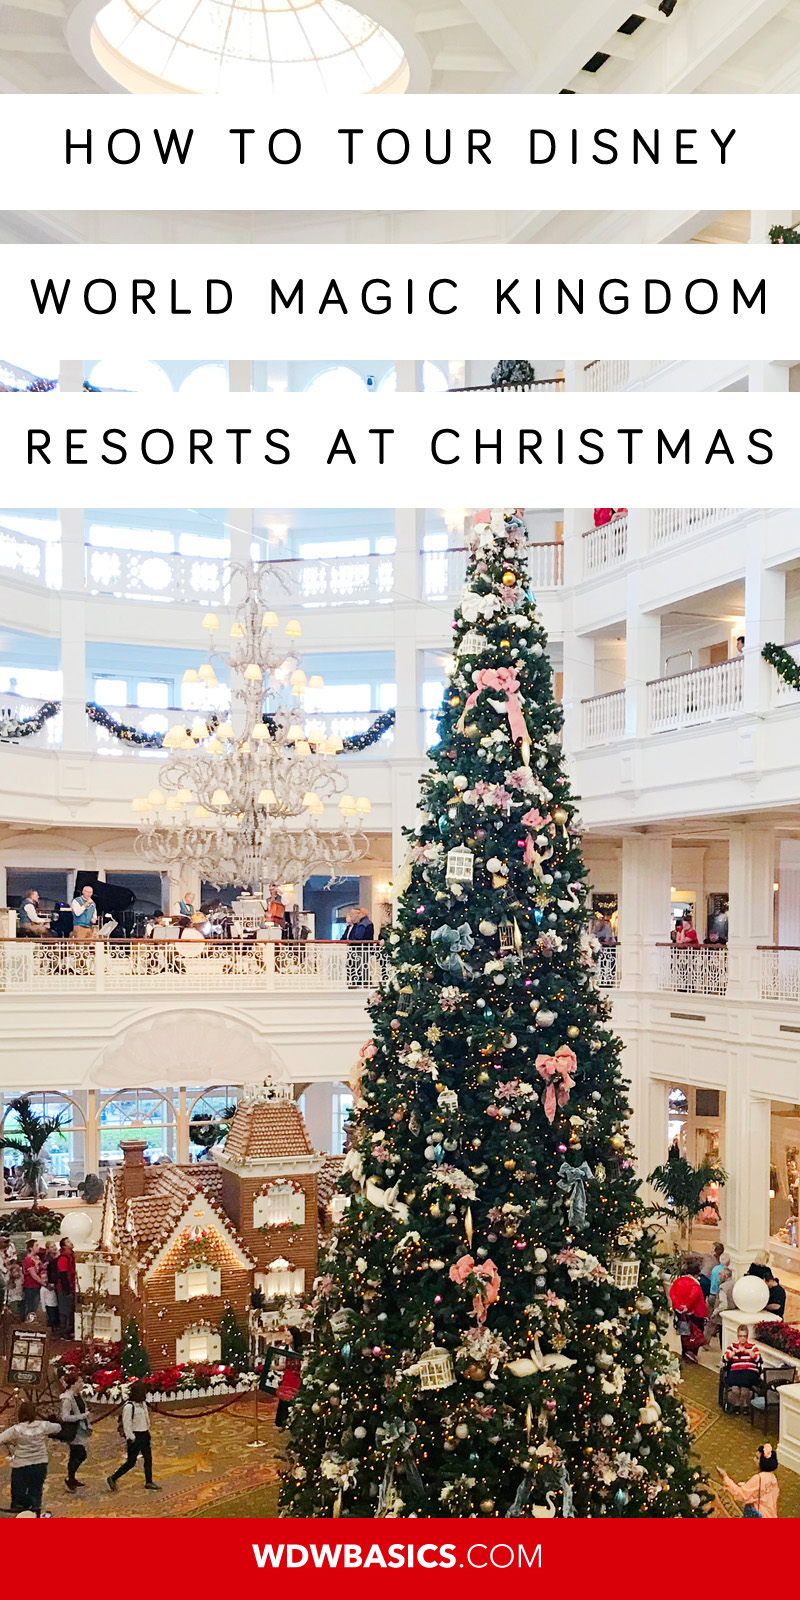 Disney World Magic Kingdom resorts at Christmas